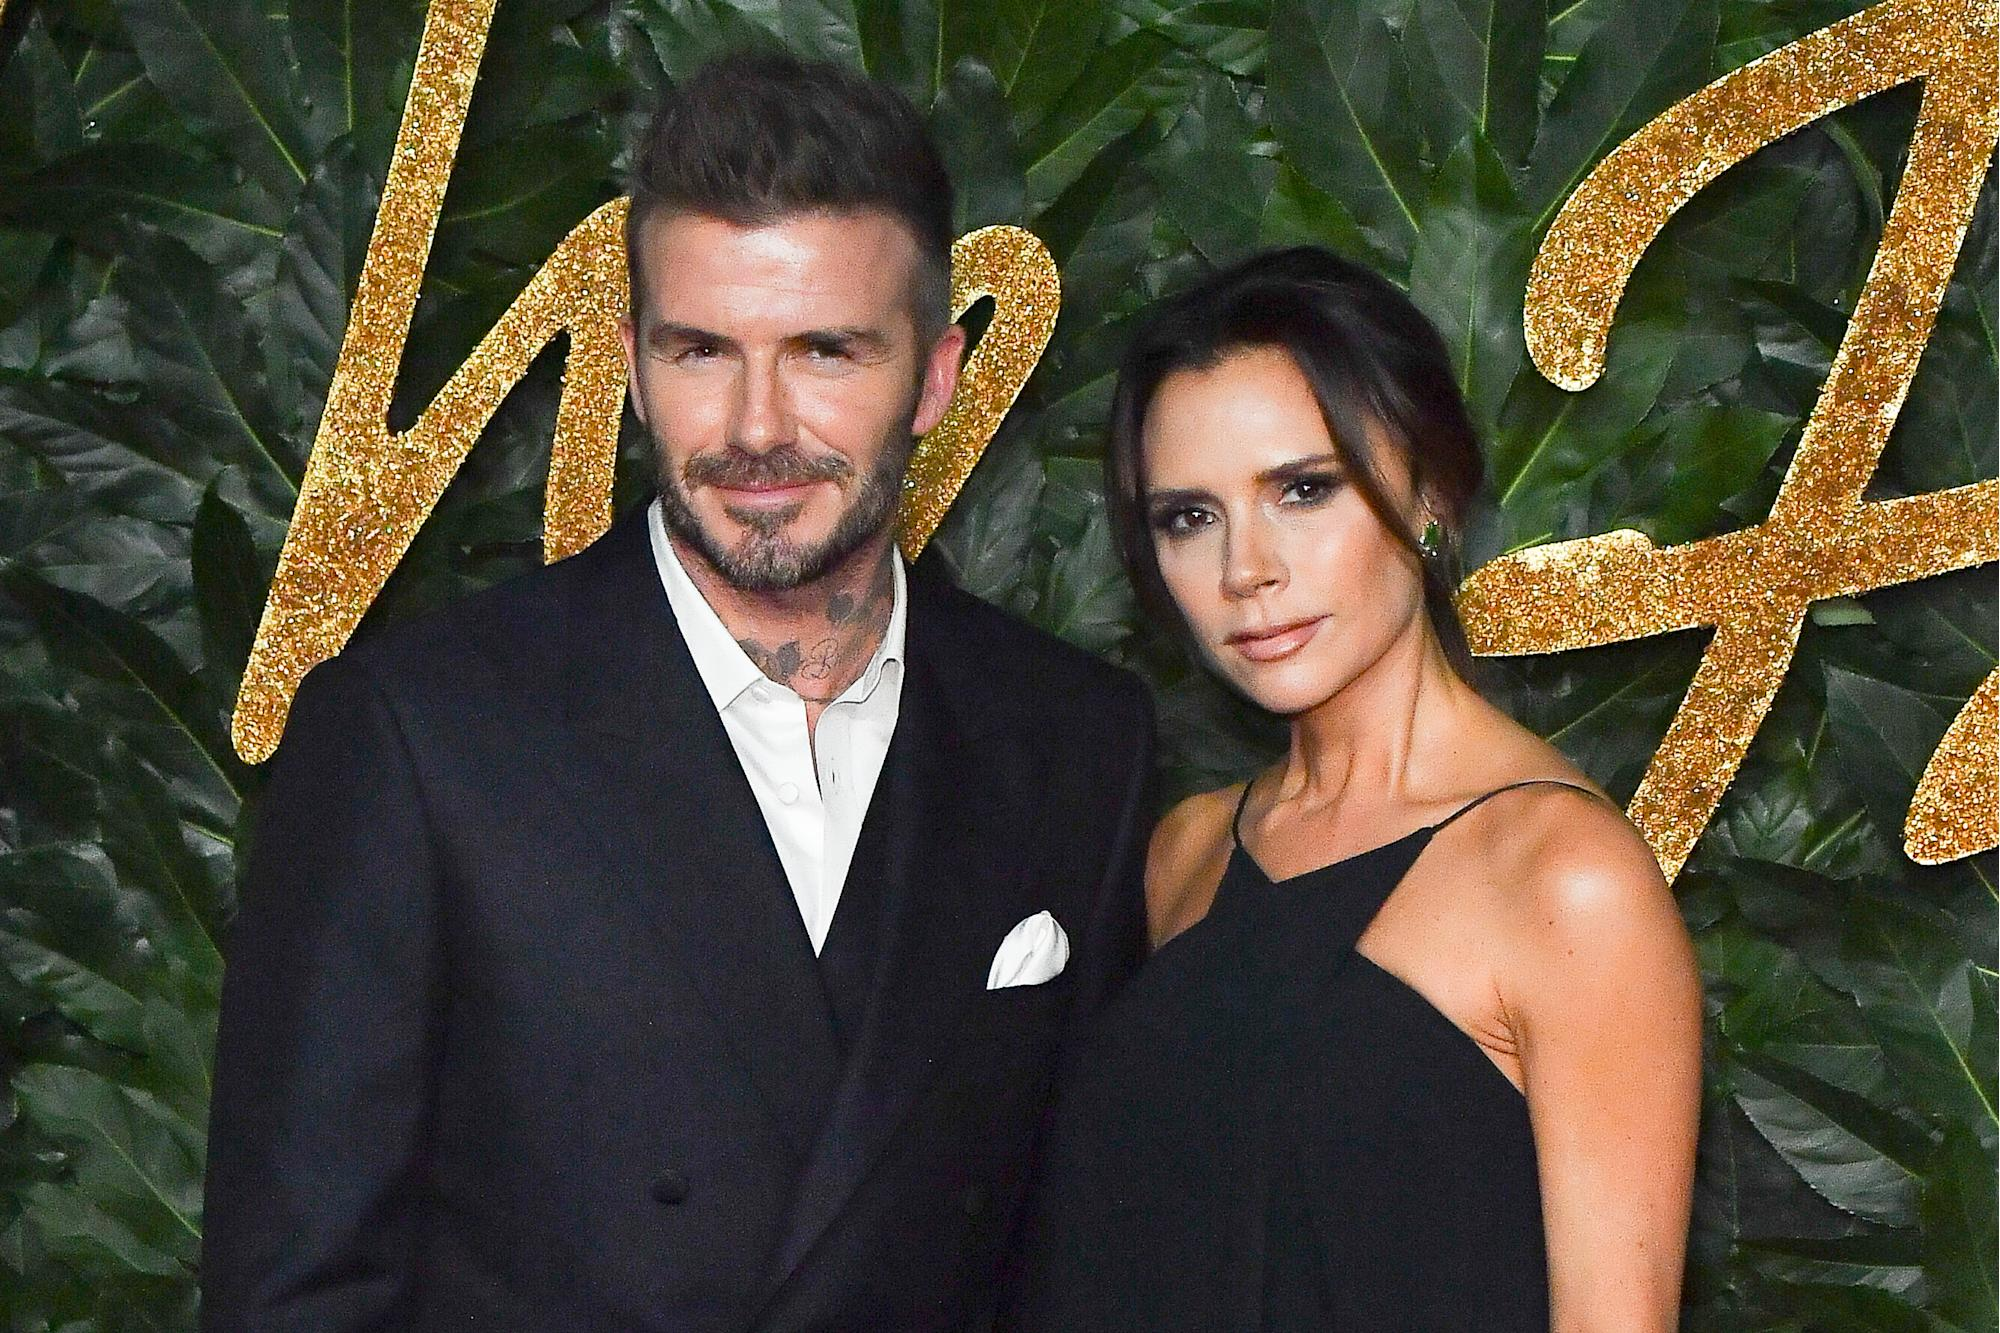 Victoria Beckham says she's 'lucky' as she shares picture of David with his top off